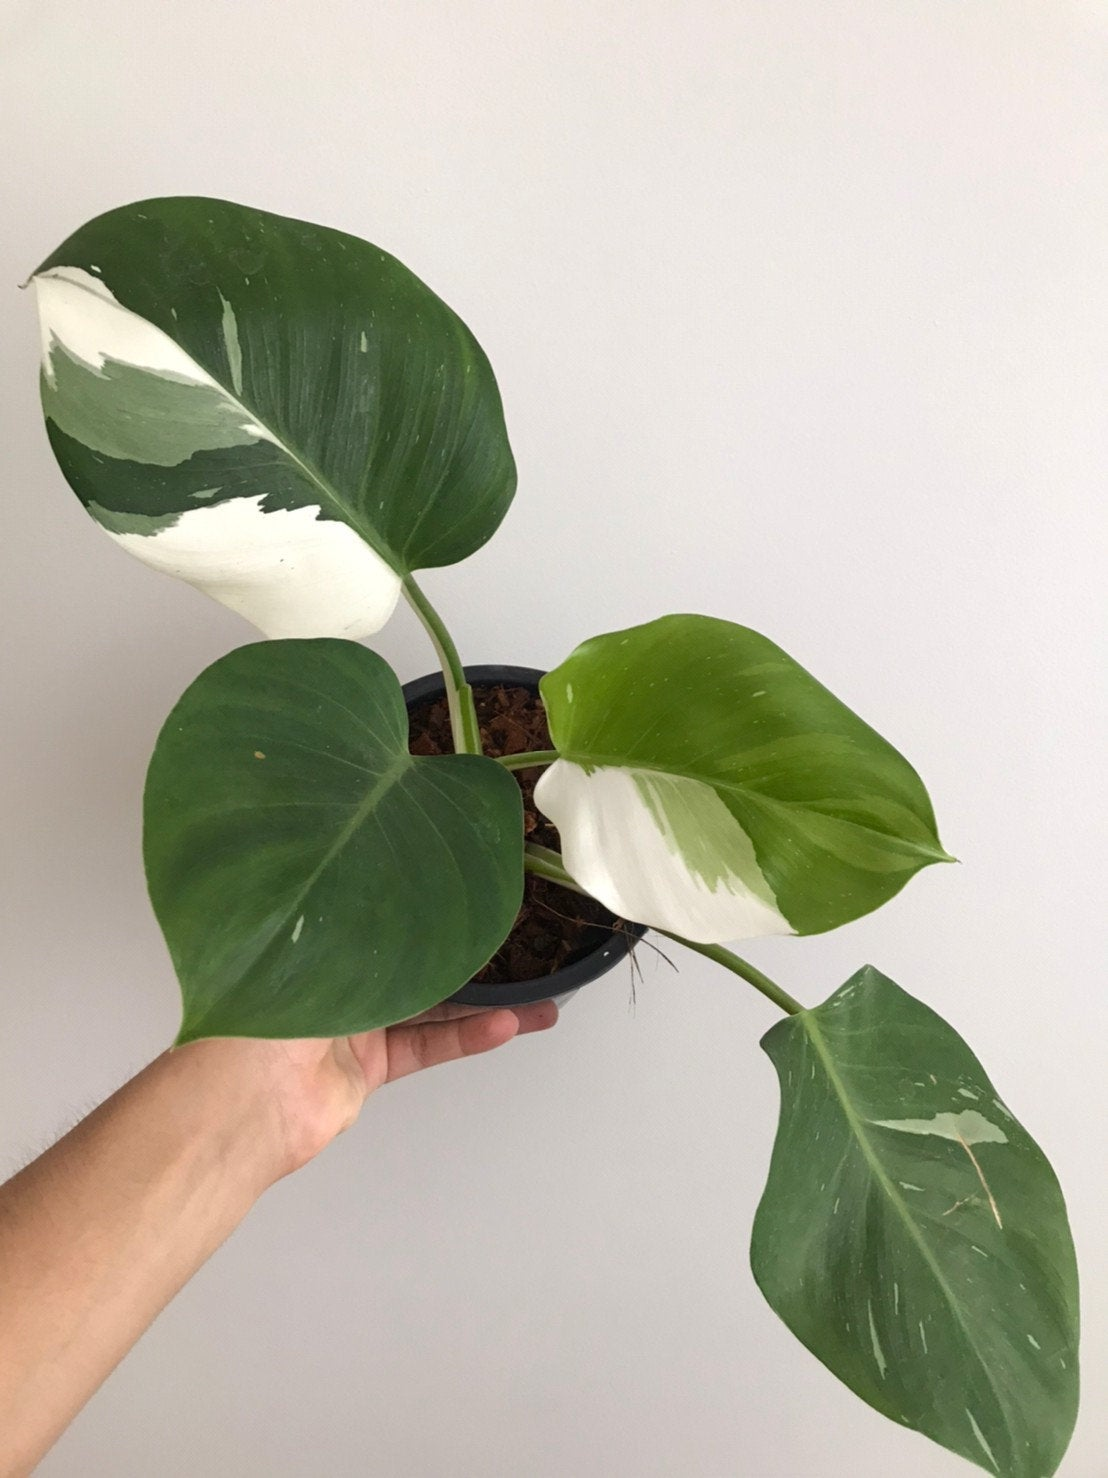 Arm holding up a more mature Philodendron White Wizard plant with four large leaves